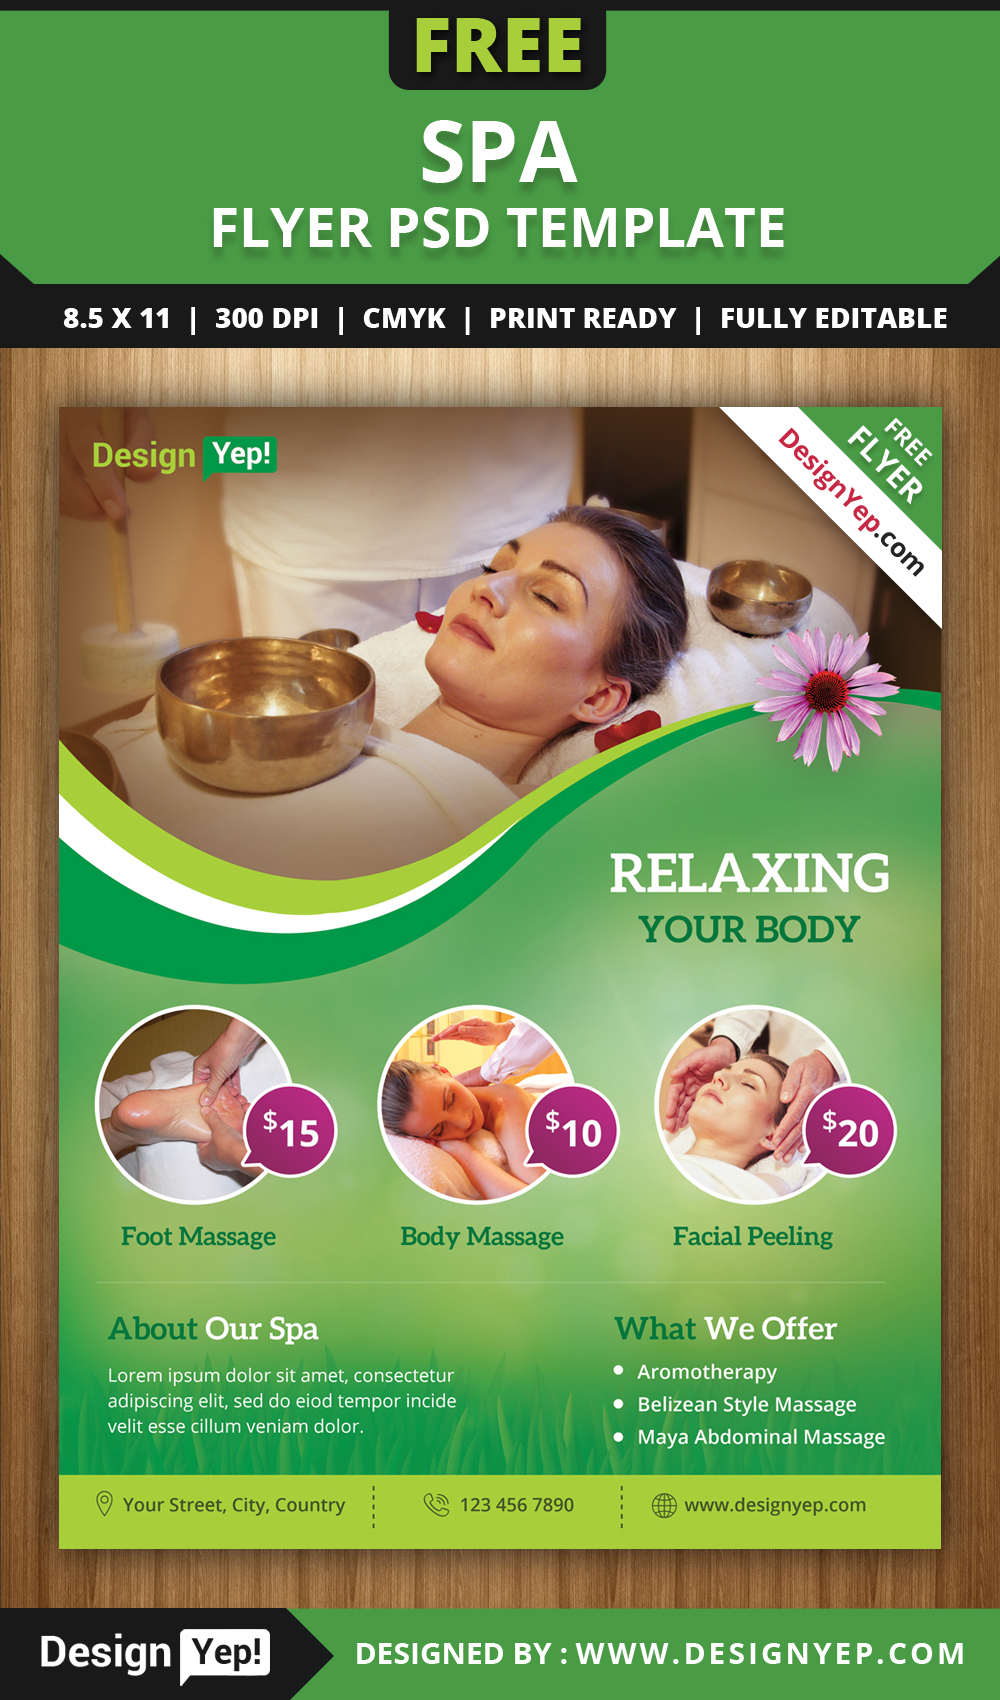 Free spa flyer psd template for download on behance for Salon brochure templates free